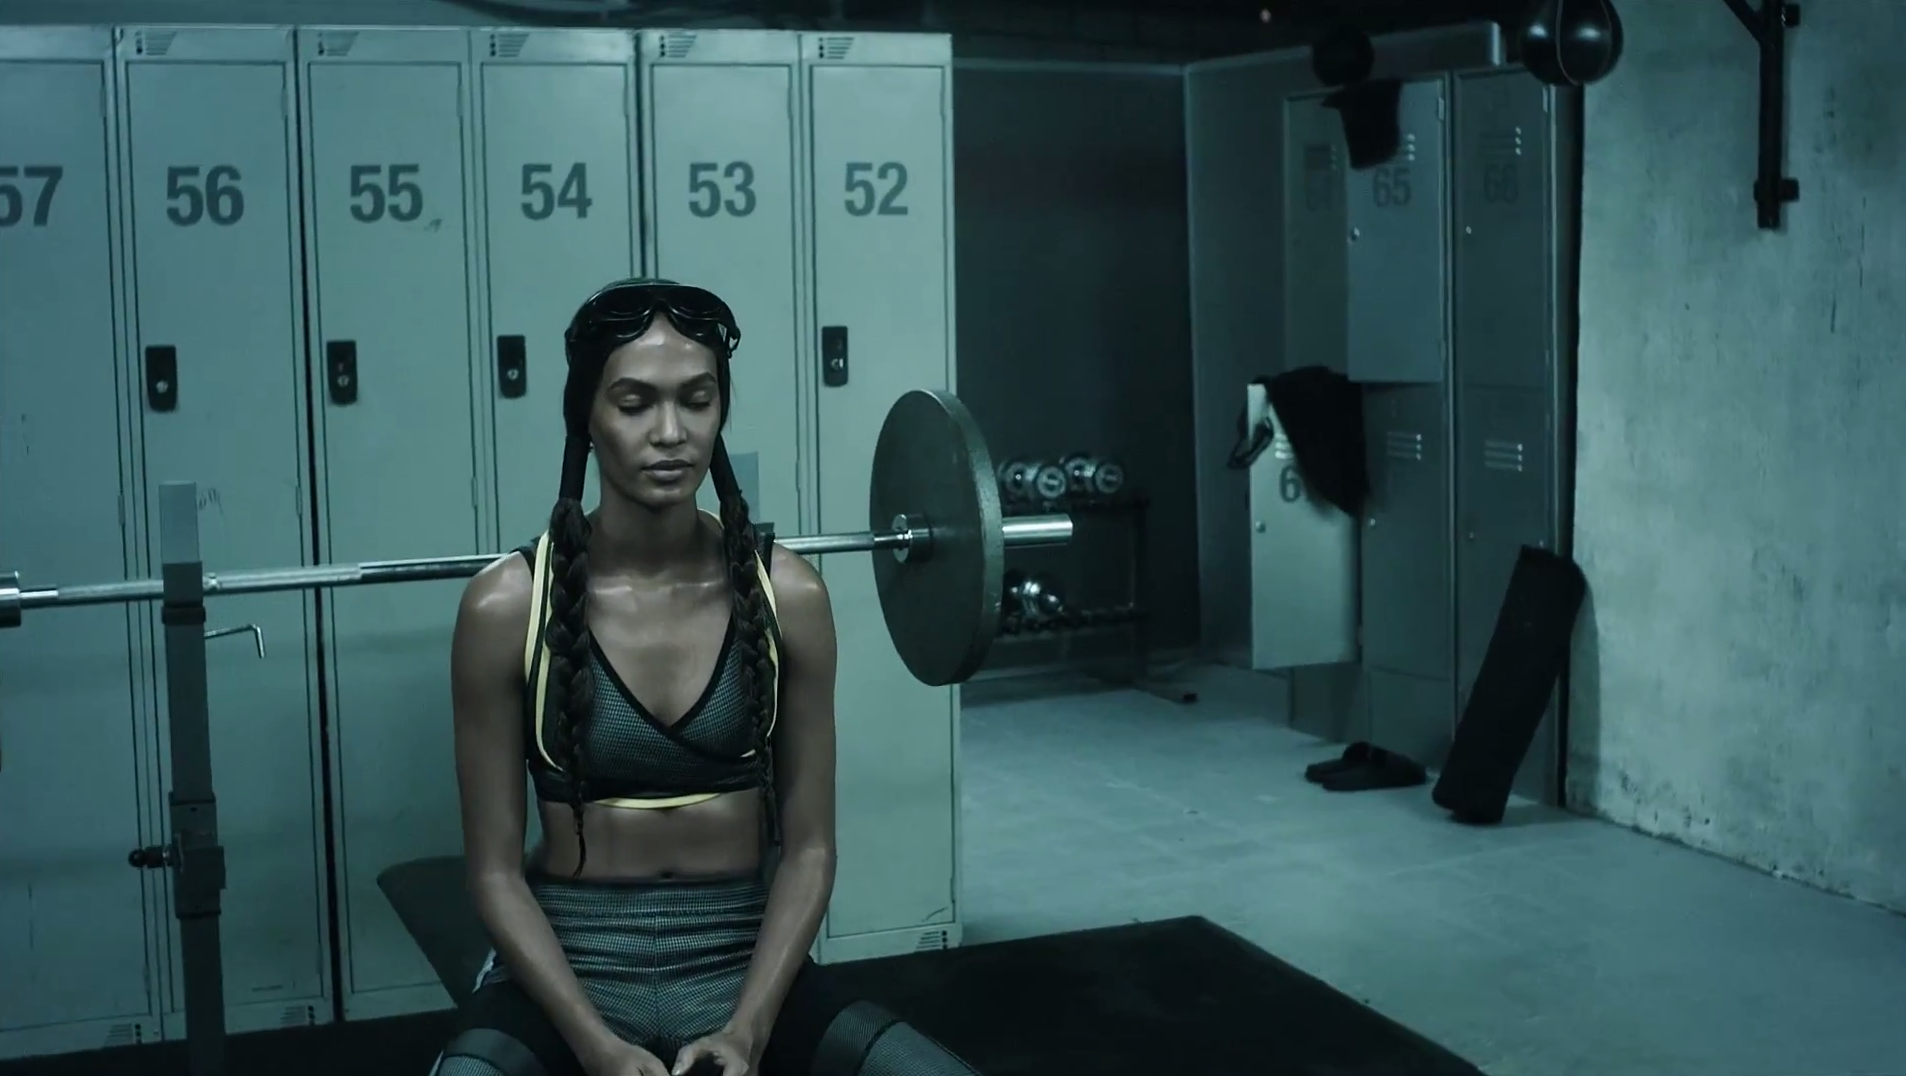 Alexander Wang's dream team comes to life. This video is insane: http://t.co/M2IM7VW3Ow #ALEXANDERWANGXHM http://t.co/kYz9cR76Zy